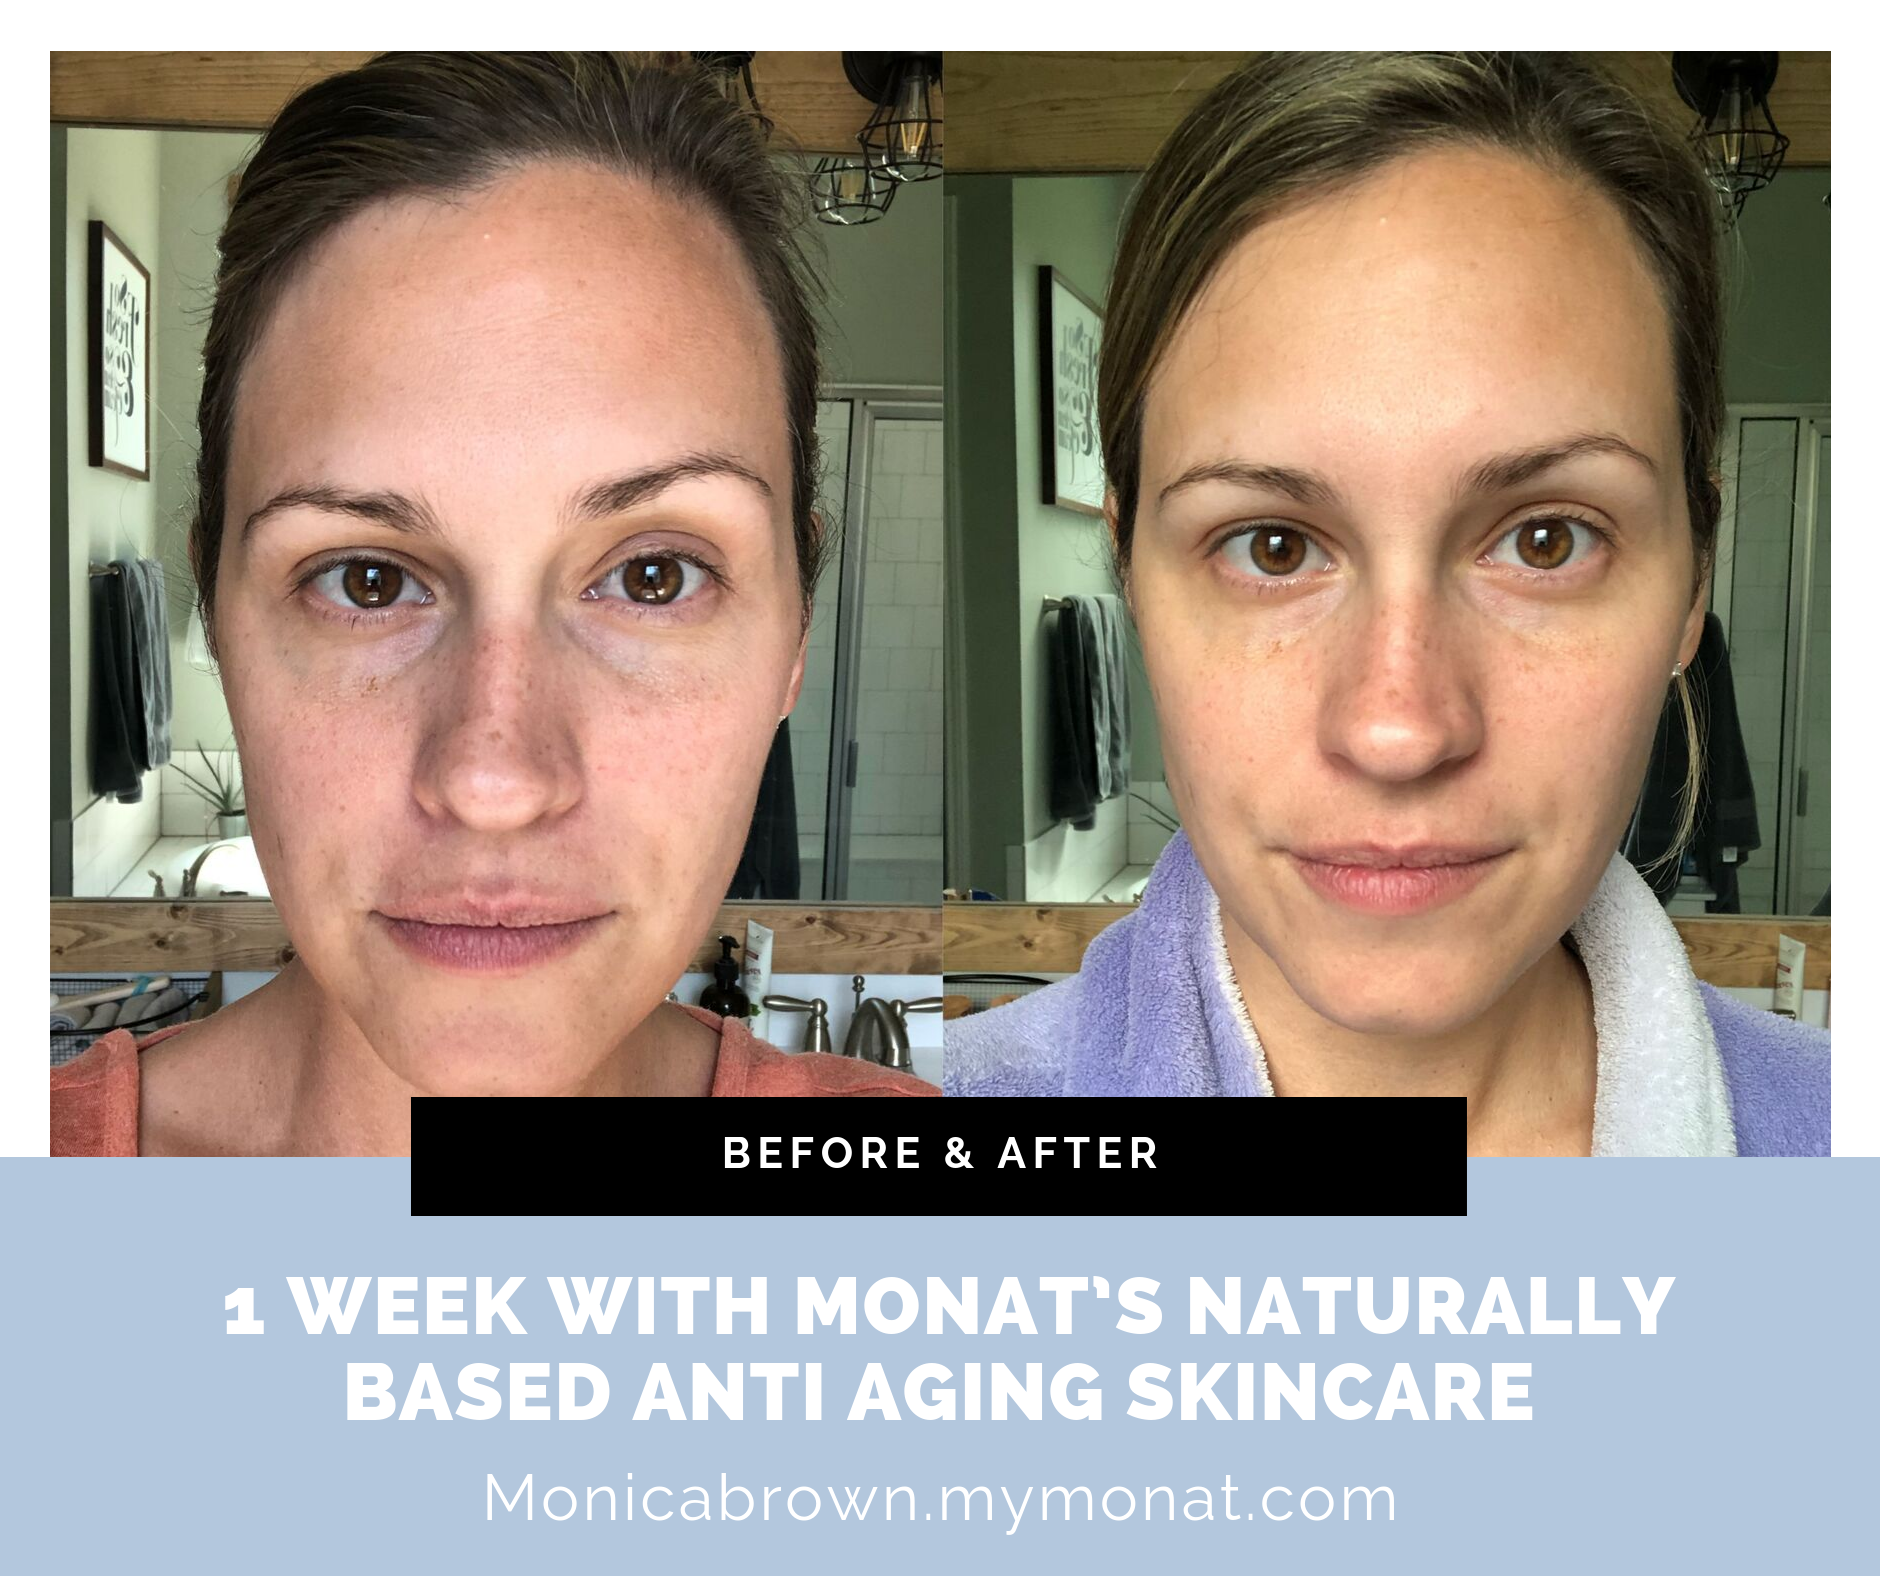 1 week with monat's naturally based anti aging skincare.png